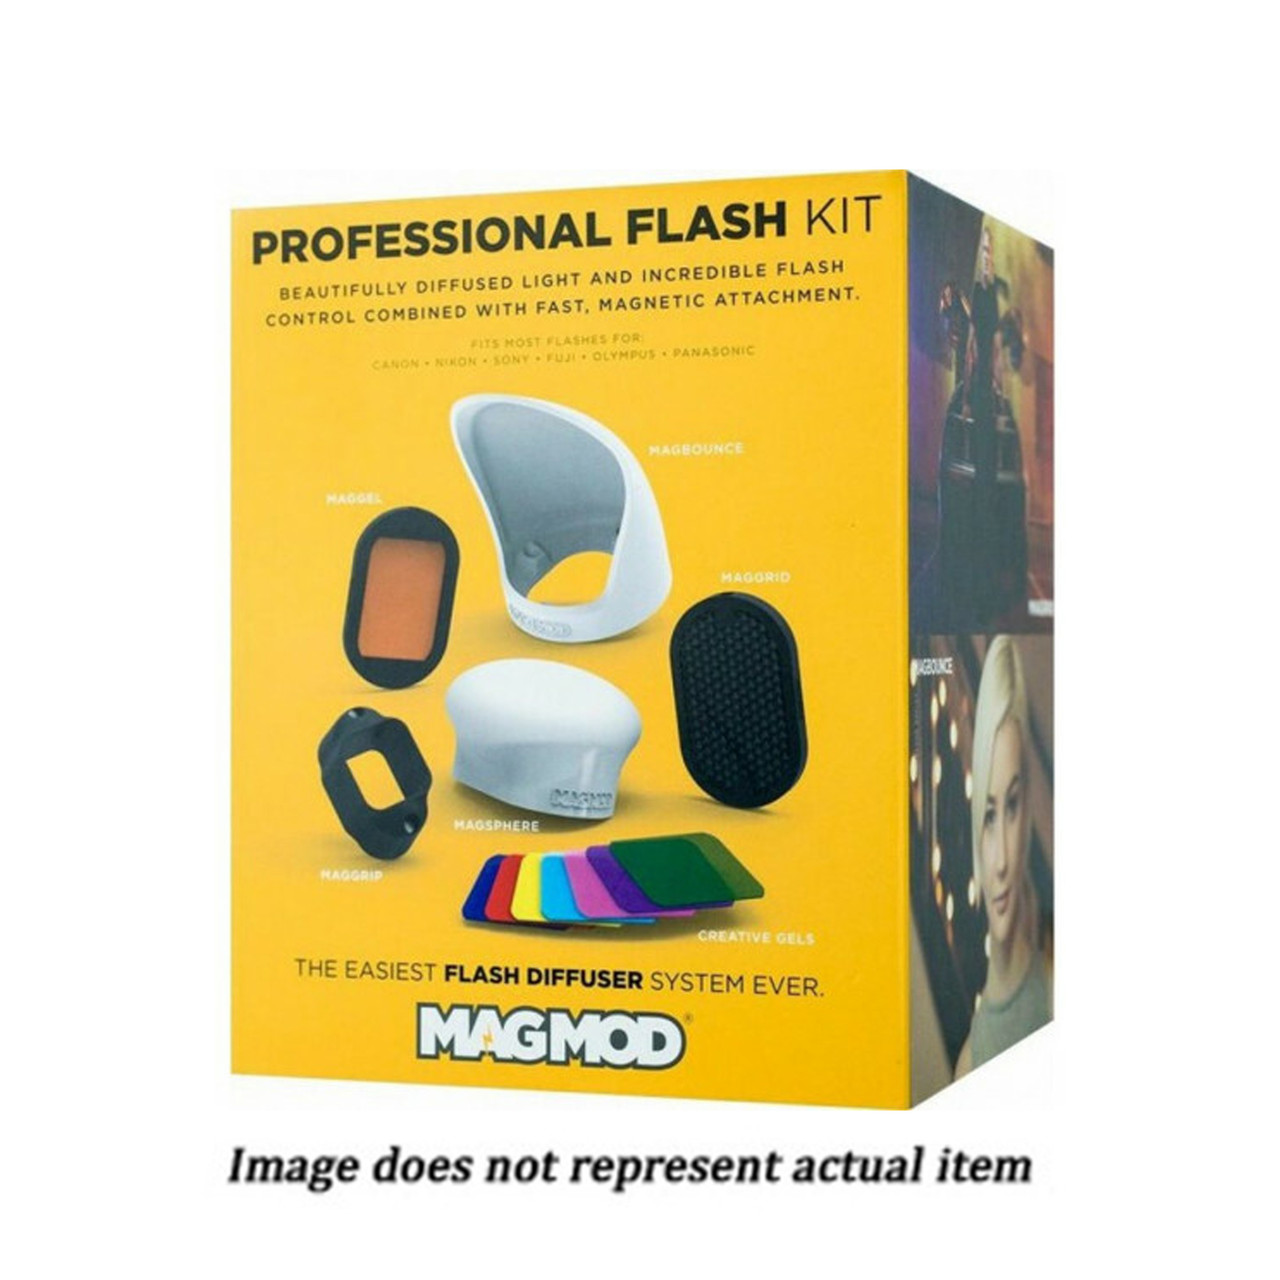 MagMod Professional Flash Kit (USED)